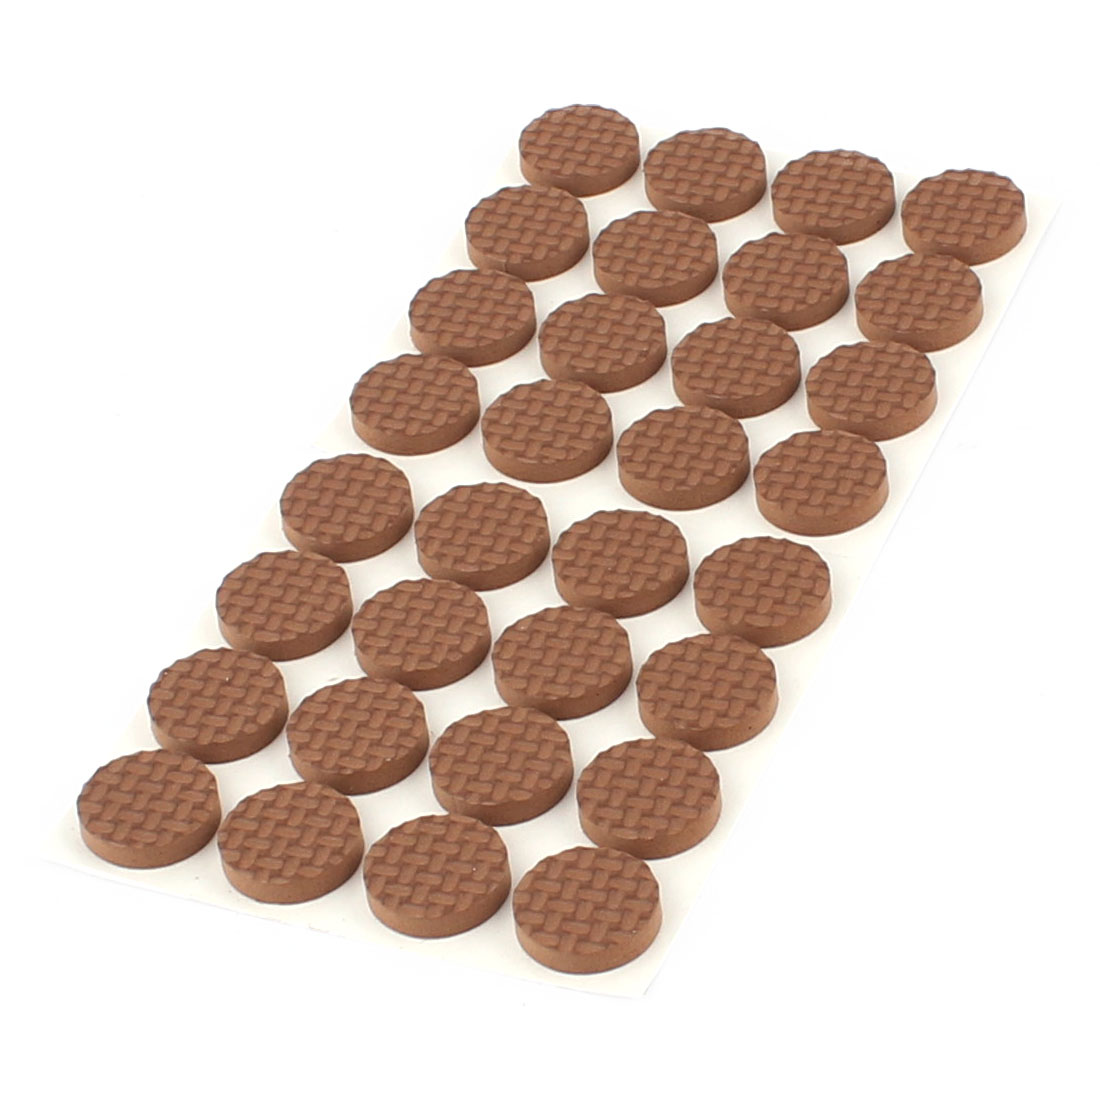 Table Chair EVA Round Anti Scratch Furniture Feet Pads Covers Cushion Brown 18mm Dia 32pcs